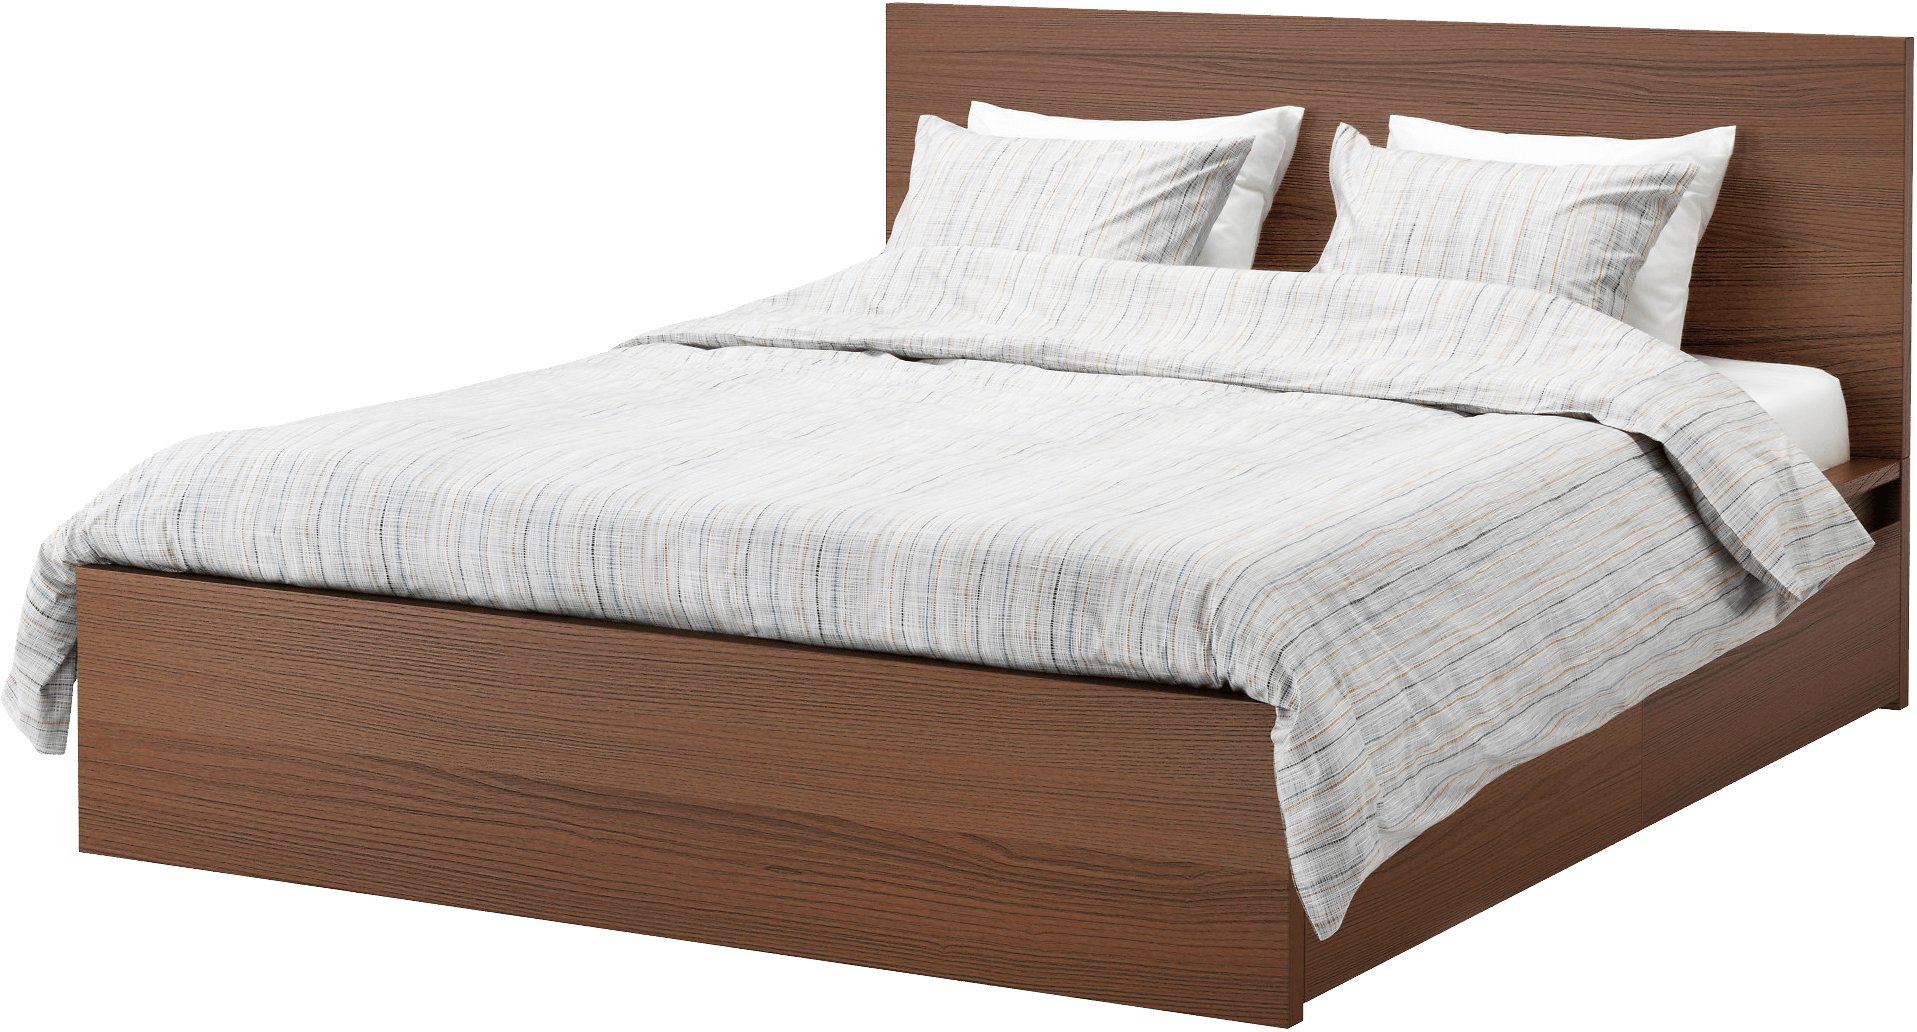 Modern Wooden Beds ~ Modern wooden bed transparent png stickpng